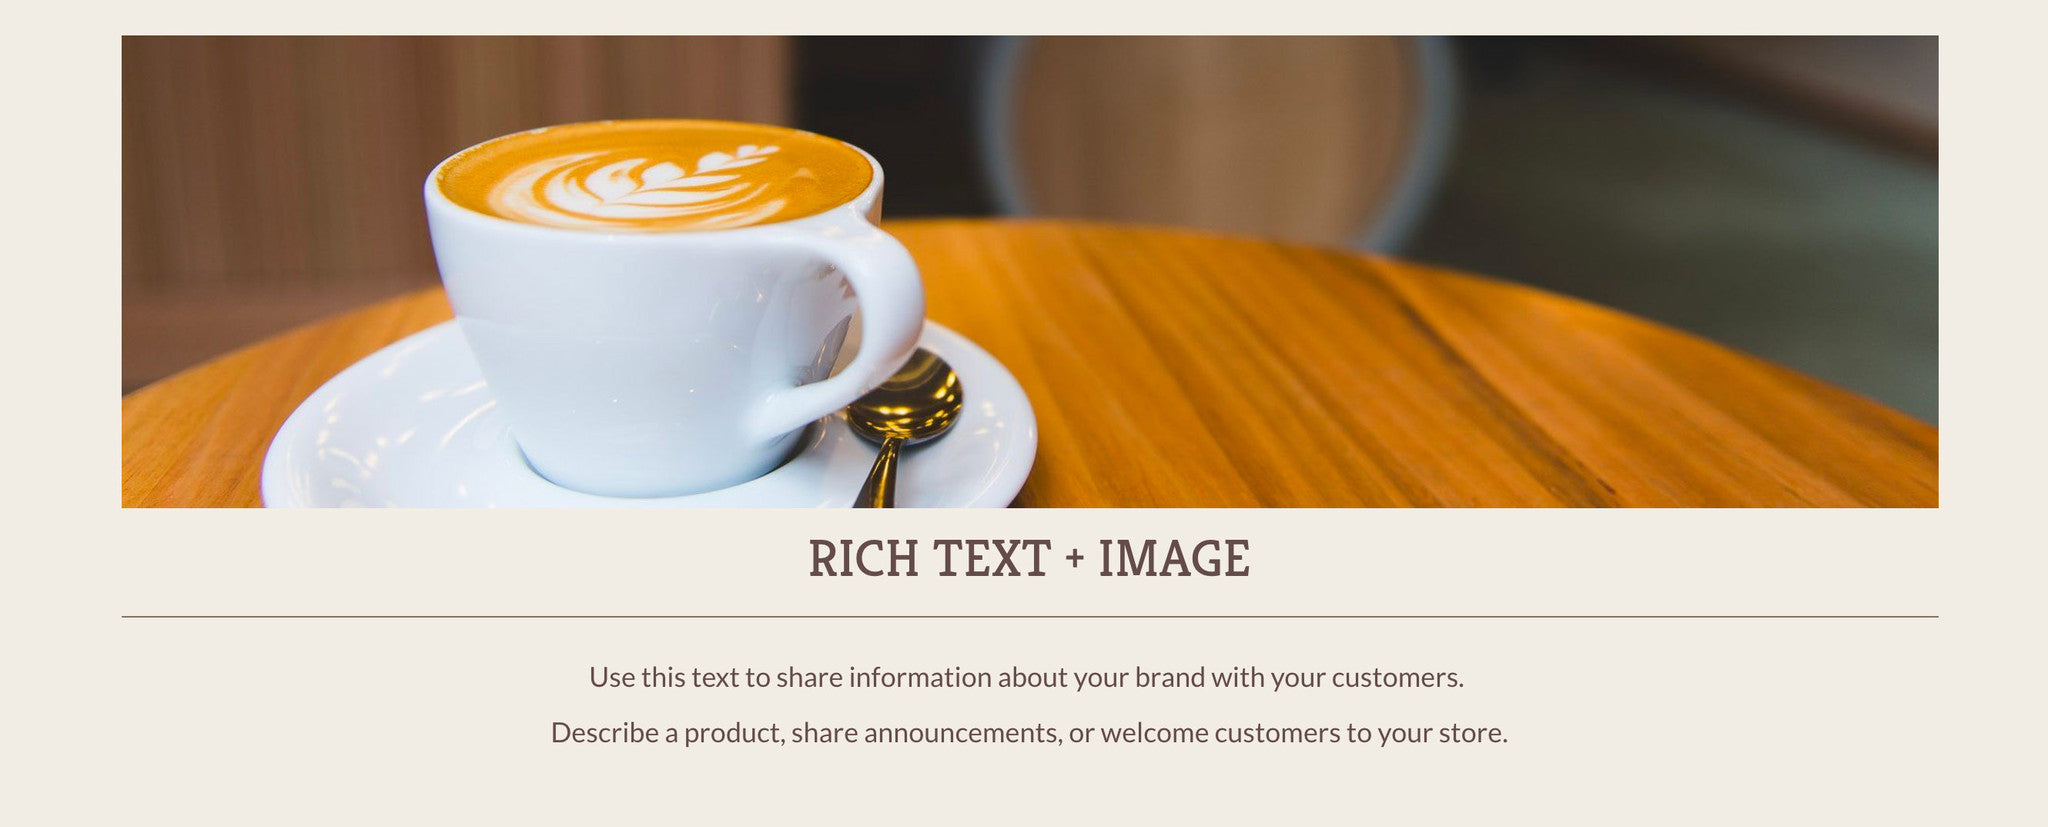 13 Ways To Use The Rich Text And Image And Page Sections